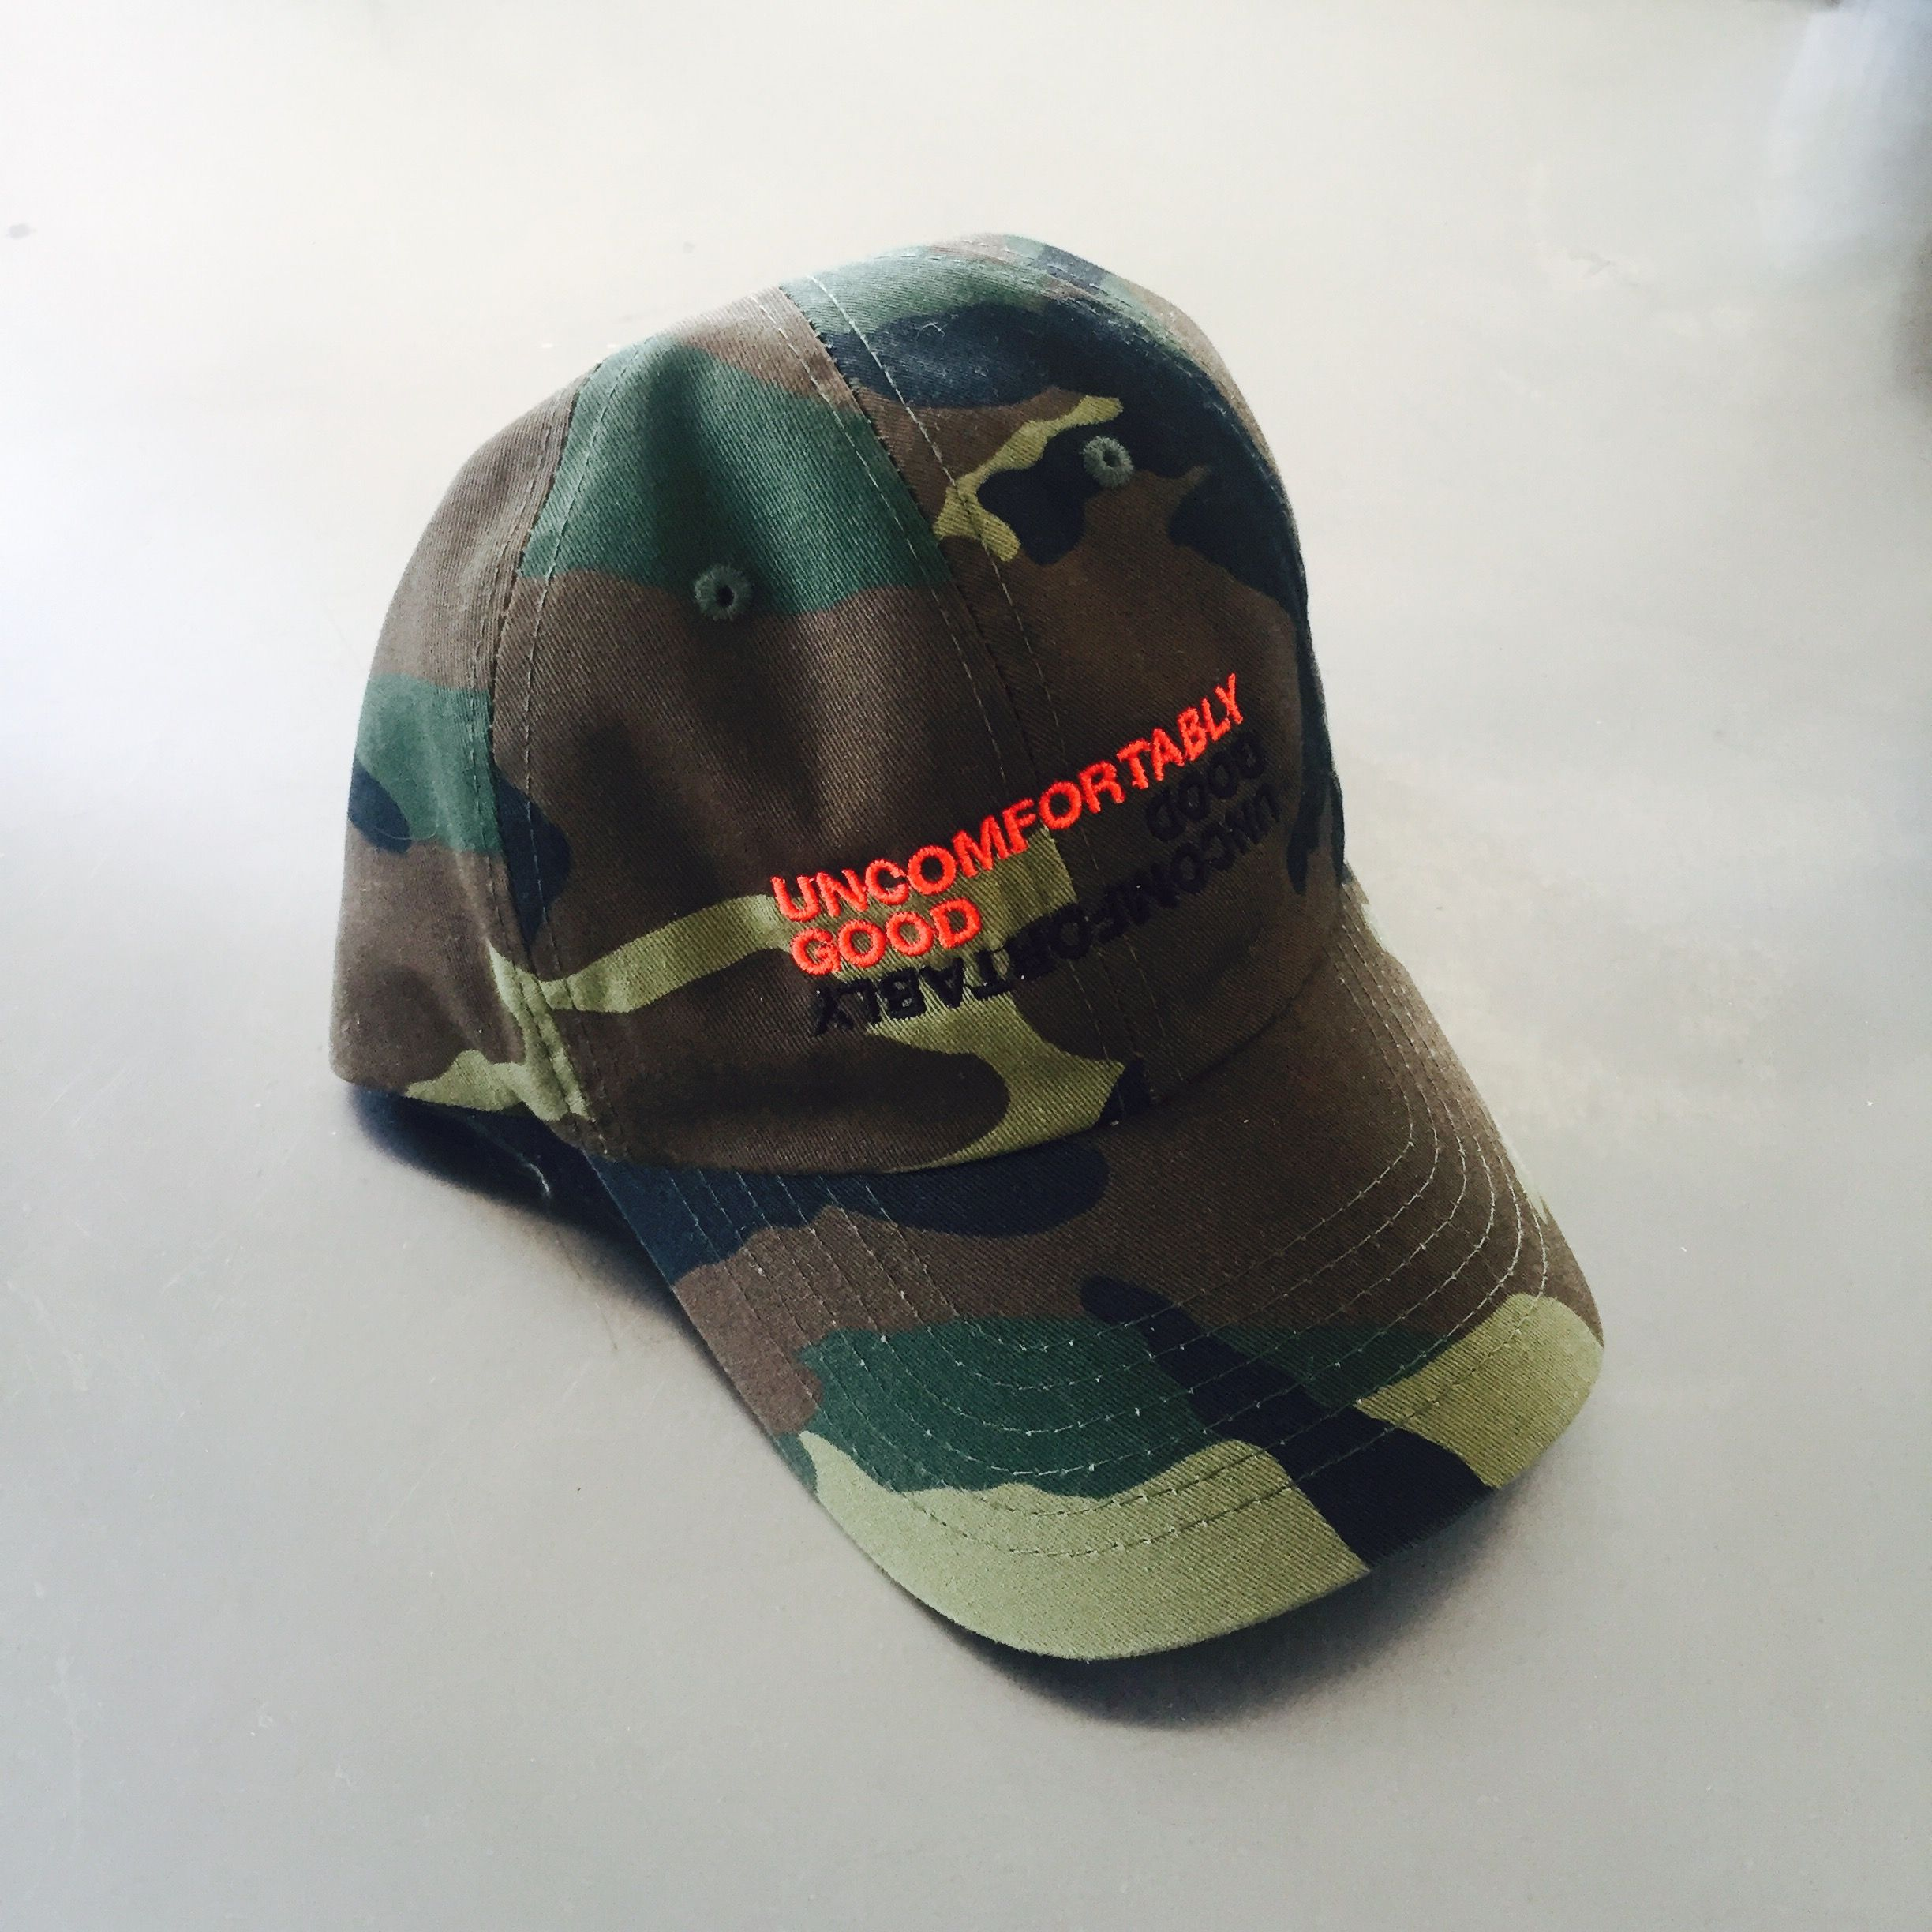 80060756e5a69 ... baseball cap blue 28d82 3c011  greece shop dad hats at zumiez carrying  soft caps and dad hats from brands like sausage